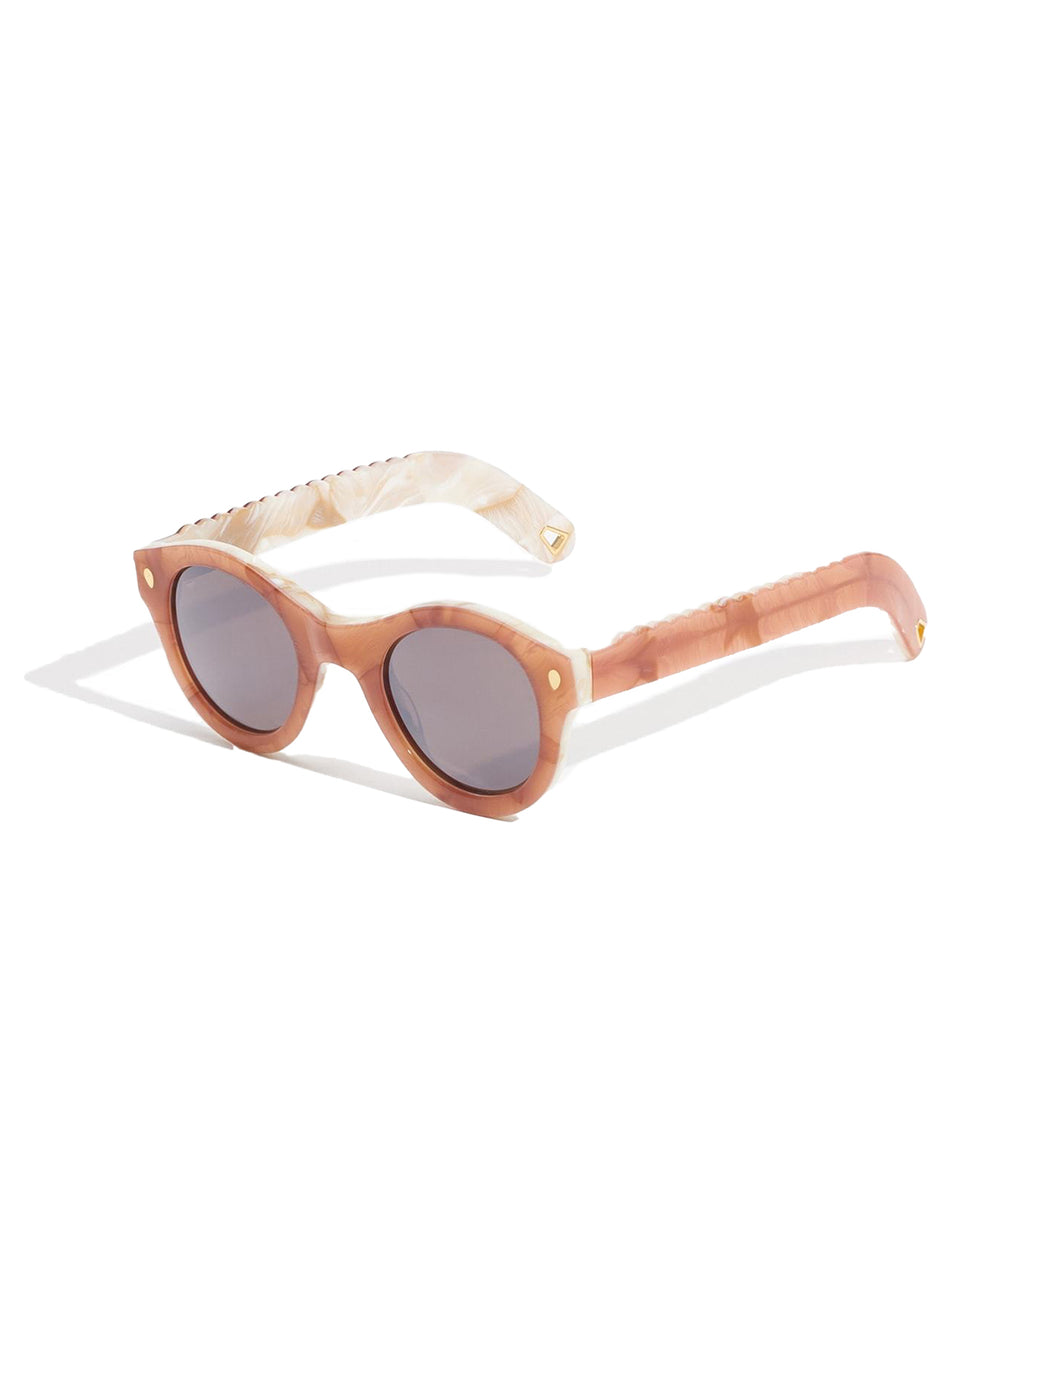 Lucy Folk Short & Sweet Sunglasses